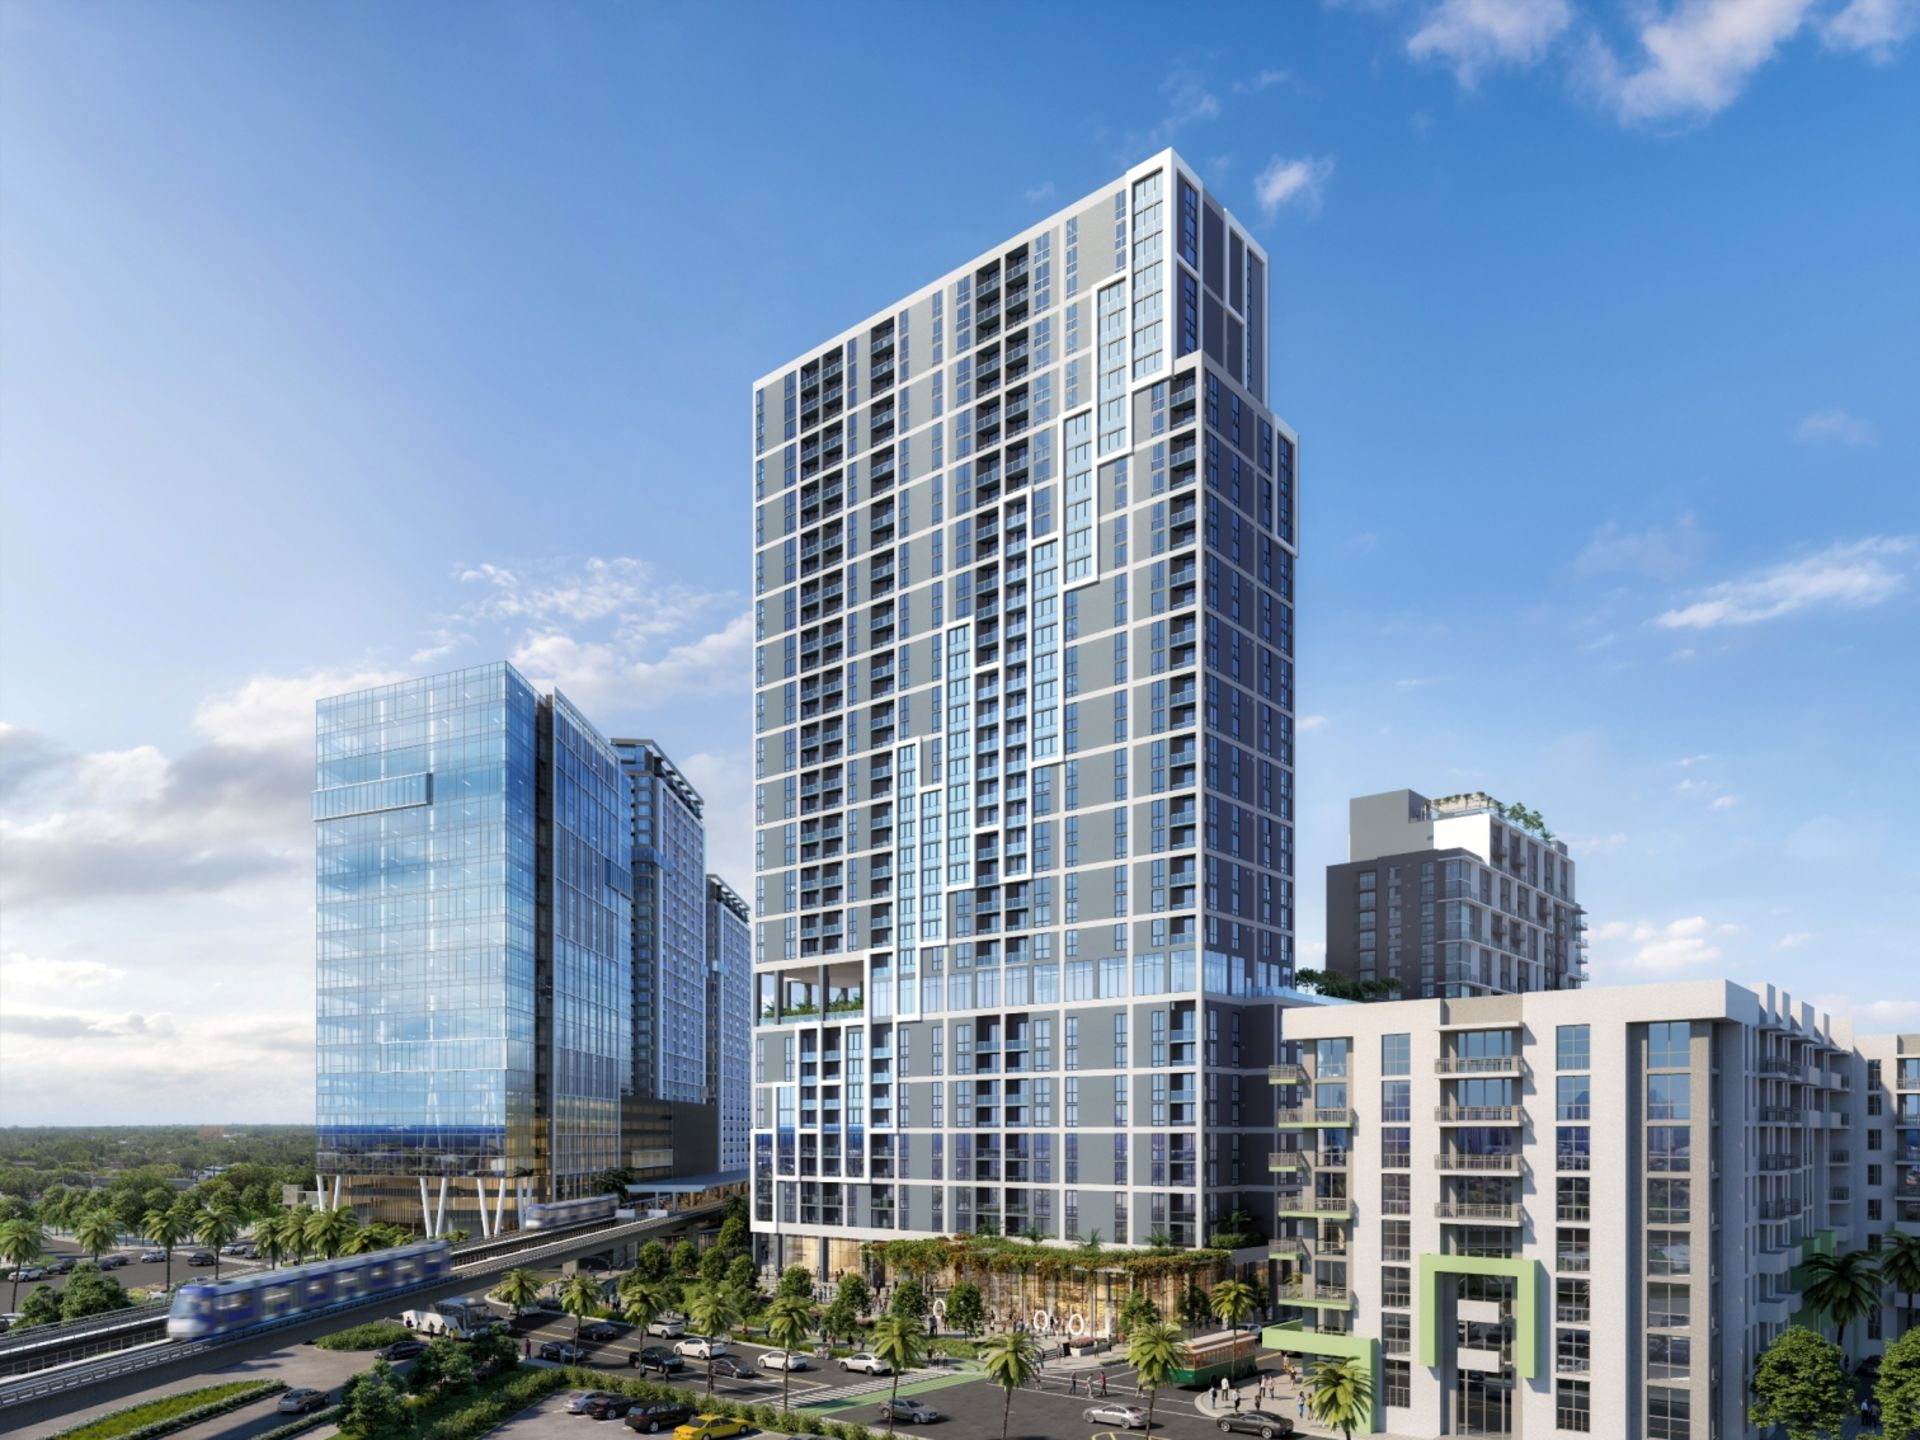 Transit-Oriented Development in Miami Snags Construction Loan